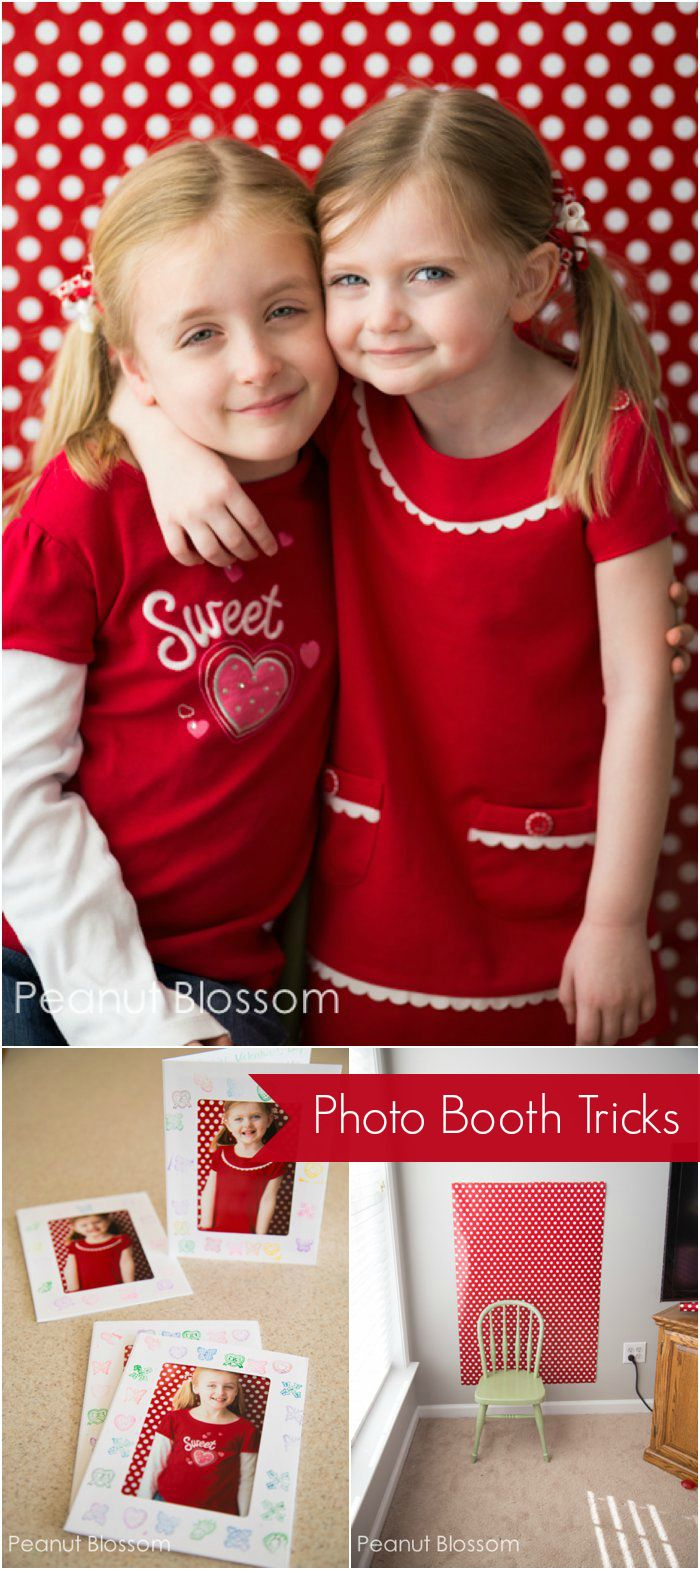 Capturing sweethearts: adorable photo booth and handmade card idea to work on with the kids for Valentine's Day!